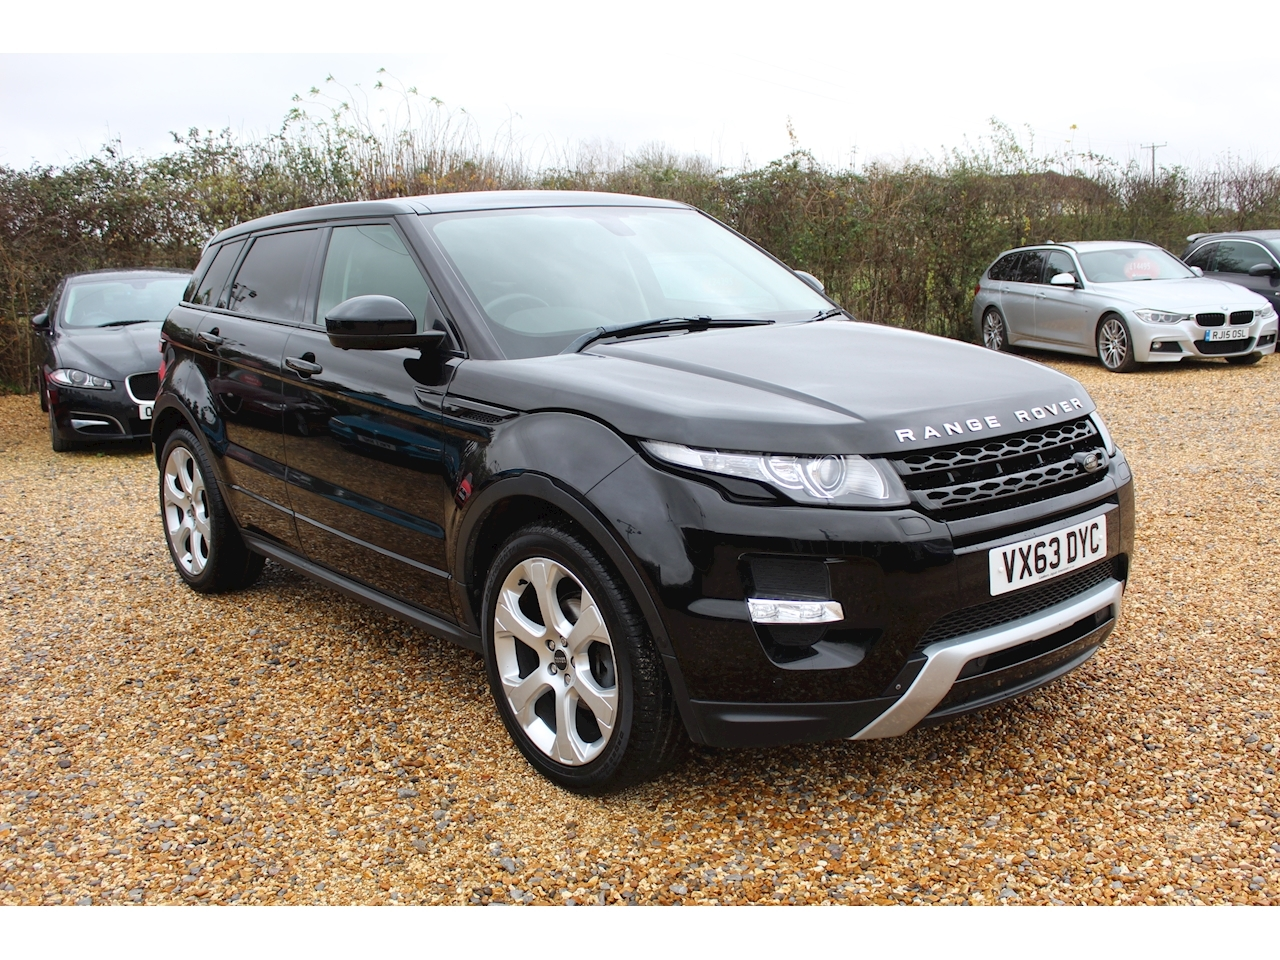 Land Rover Range Rover Evoque Sd4 Dynamic Lux 2.2 5dr SUV Automatic Diesel